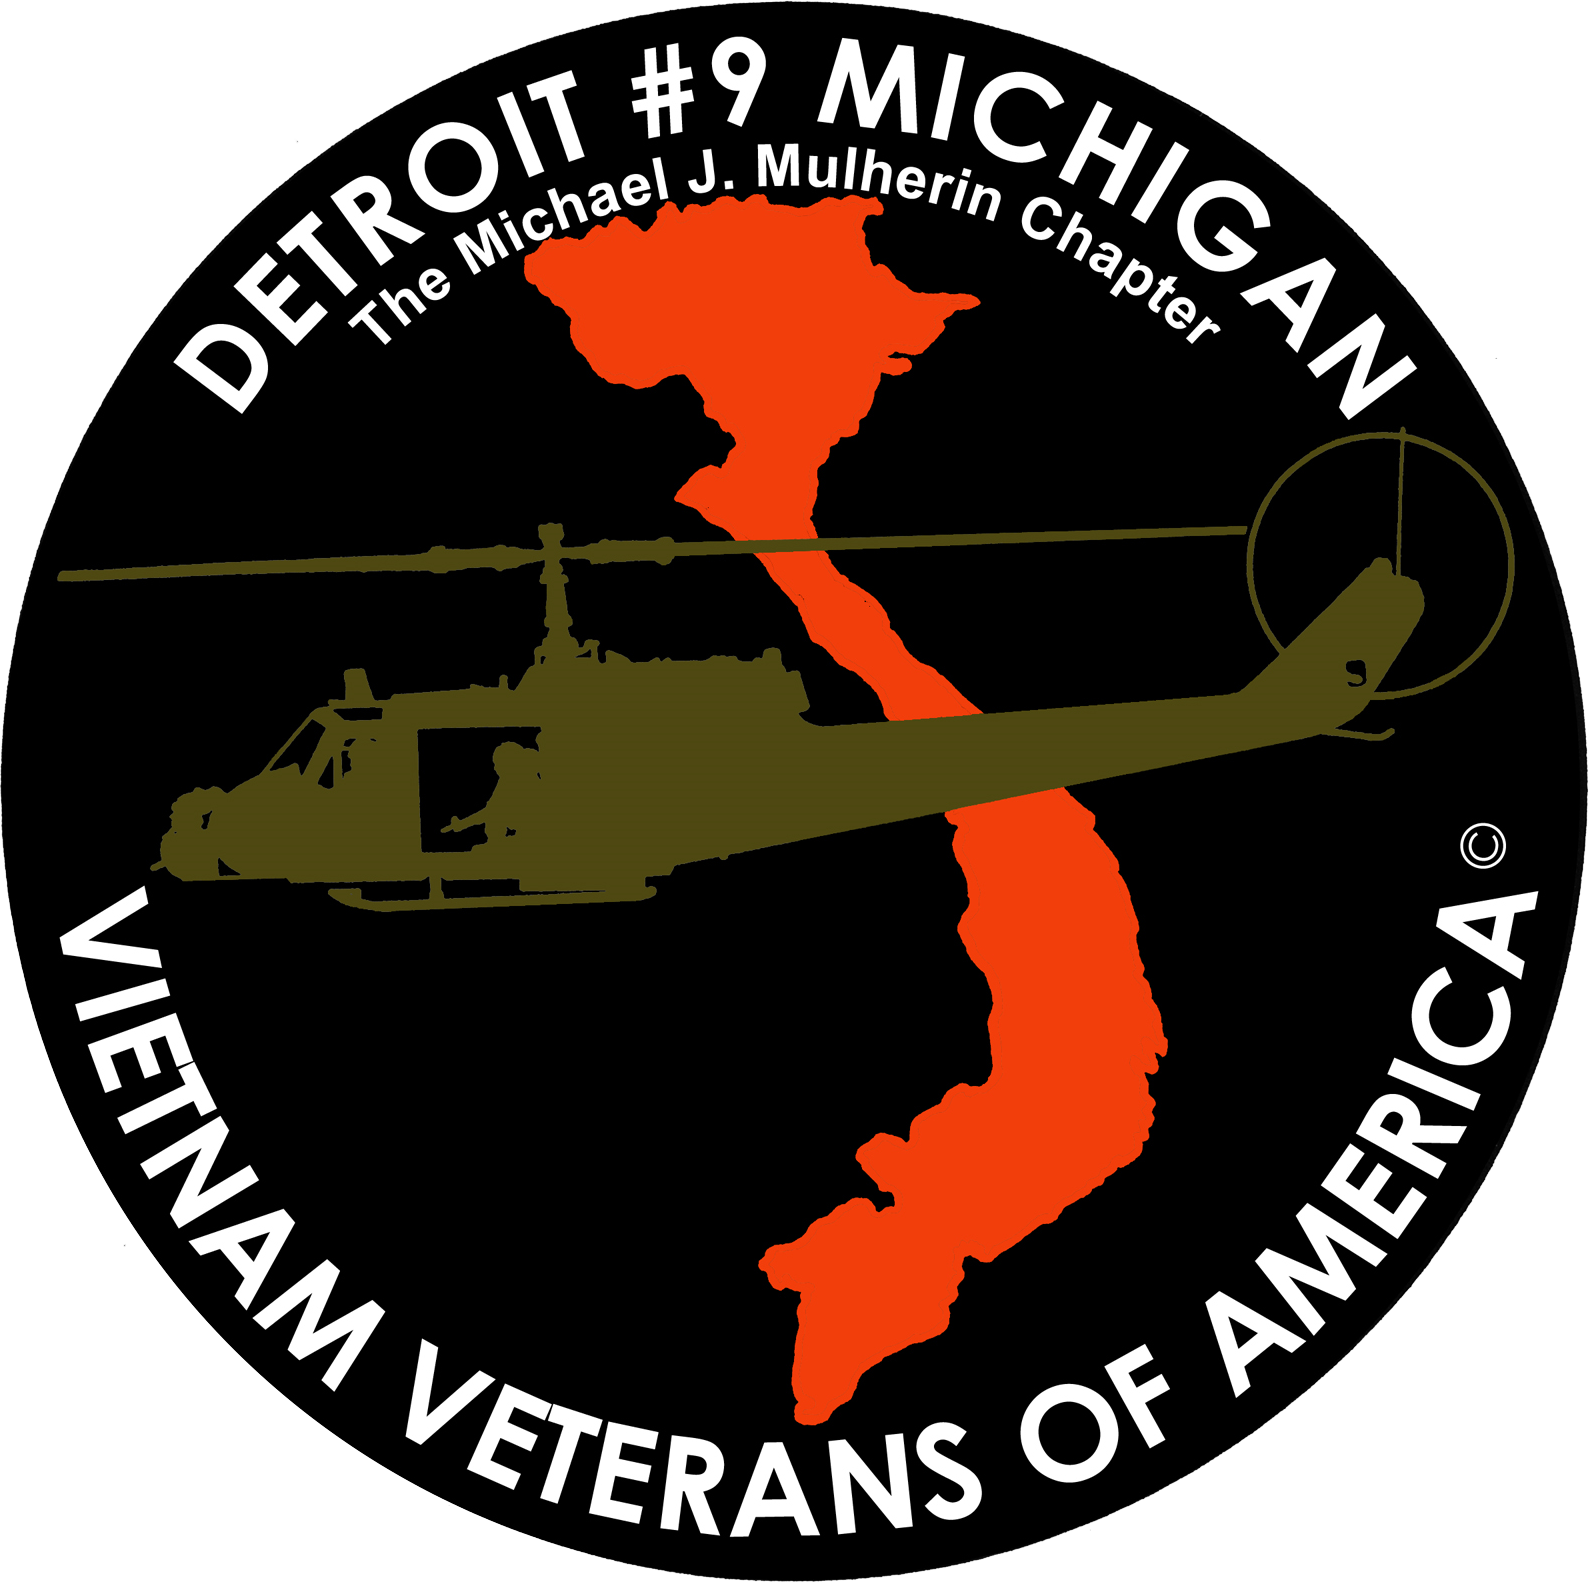 Vietnam Veterans of America, Detroit Chapter 9